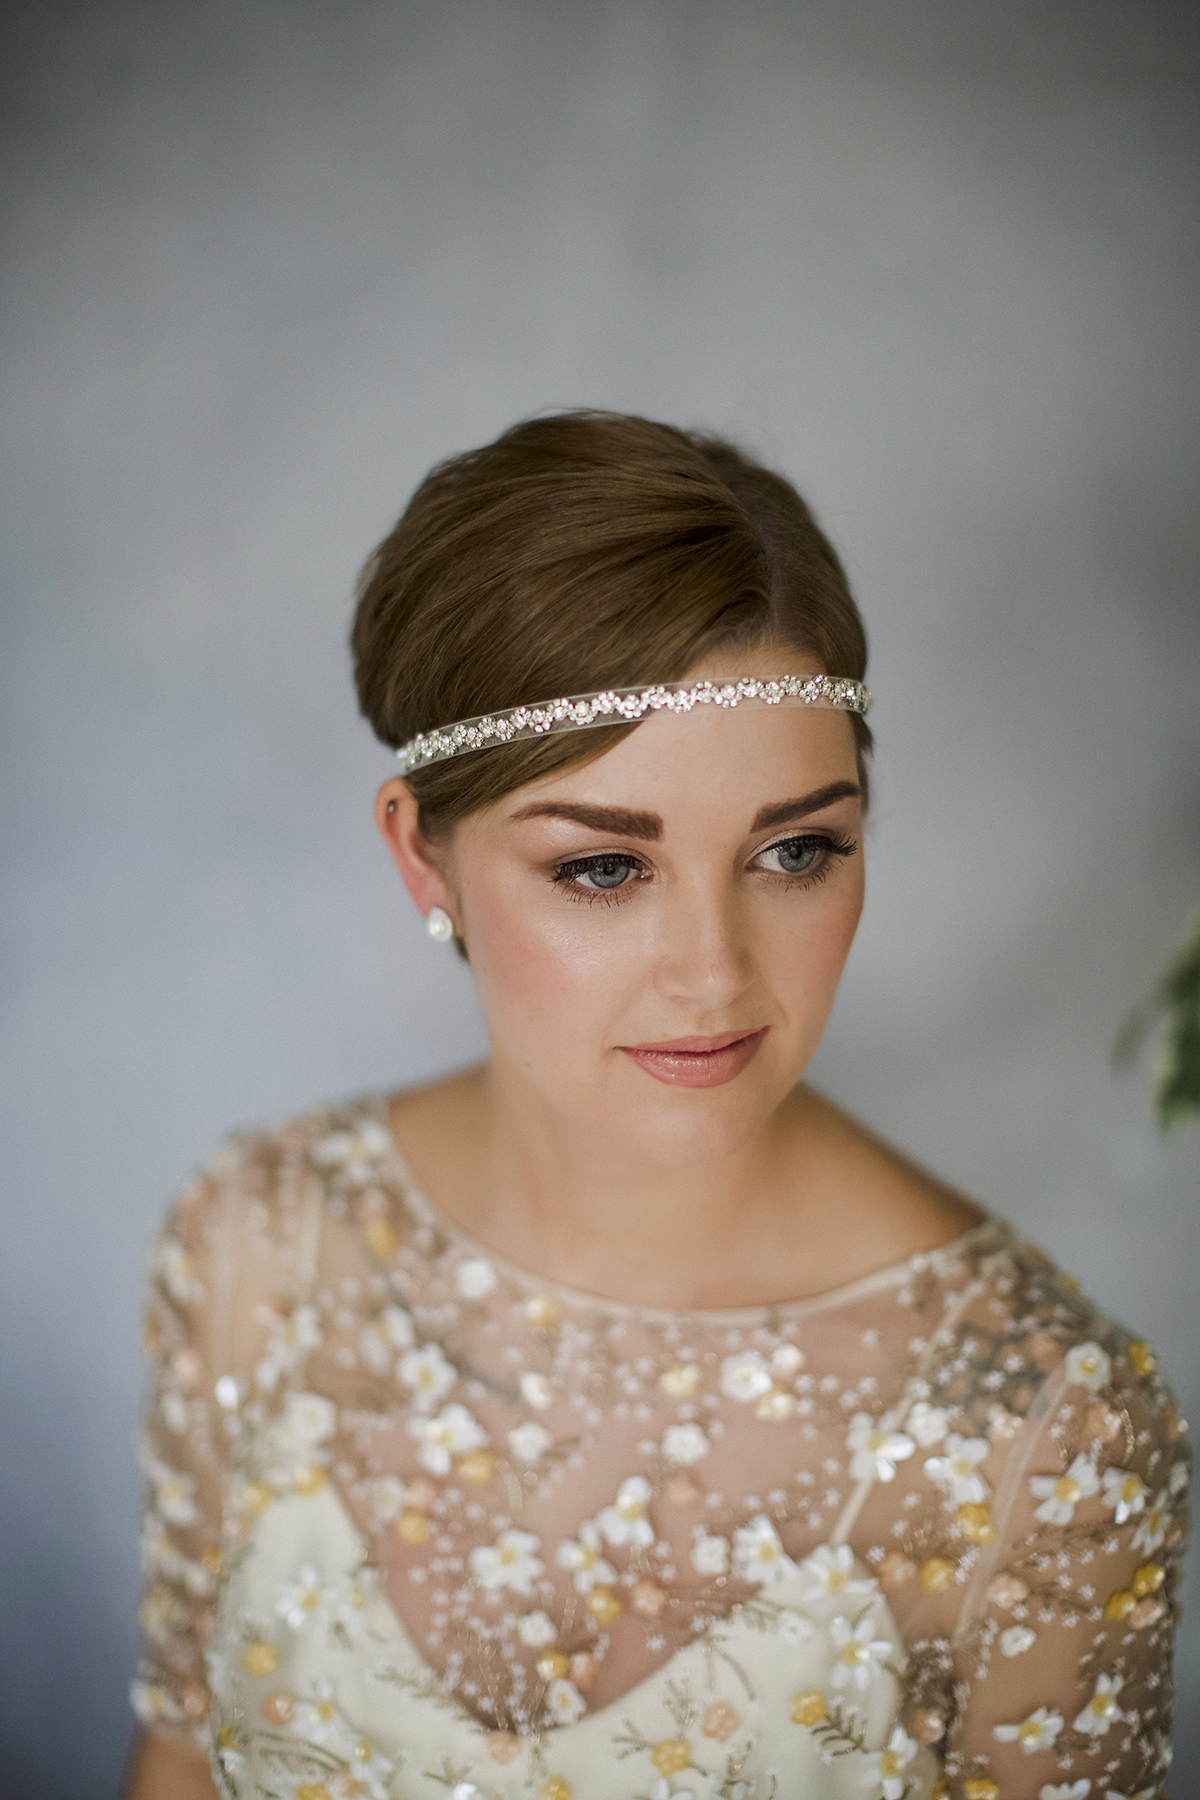 25 Wedding Hairstyles for Short Hair | Brit + Co |Very Short Hair For Wedding Headpieces